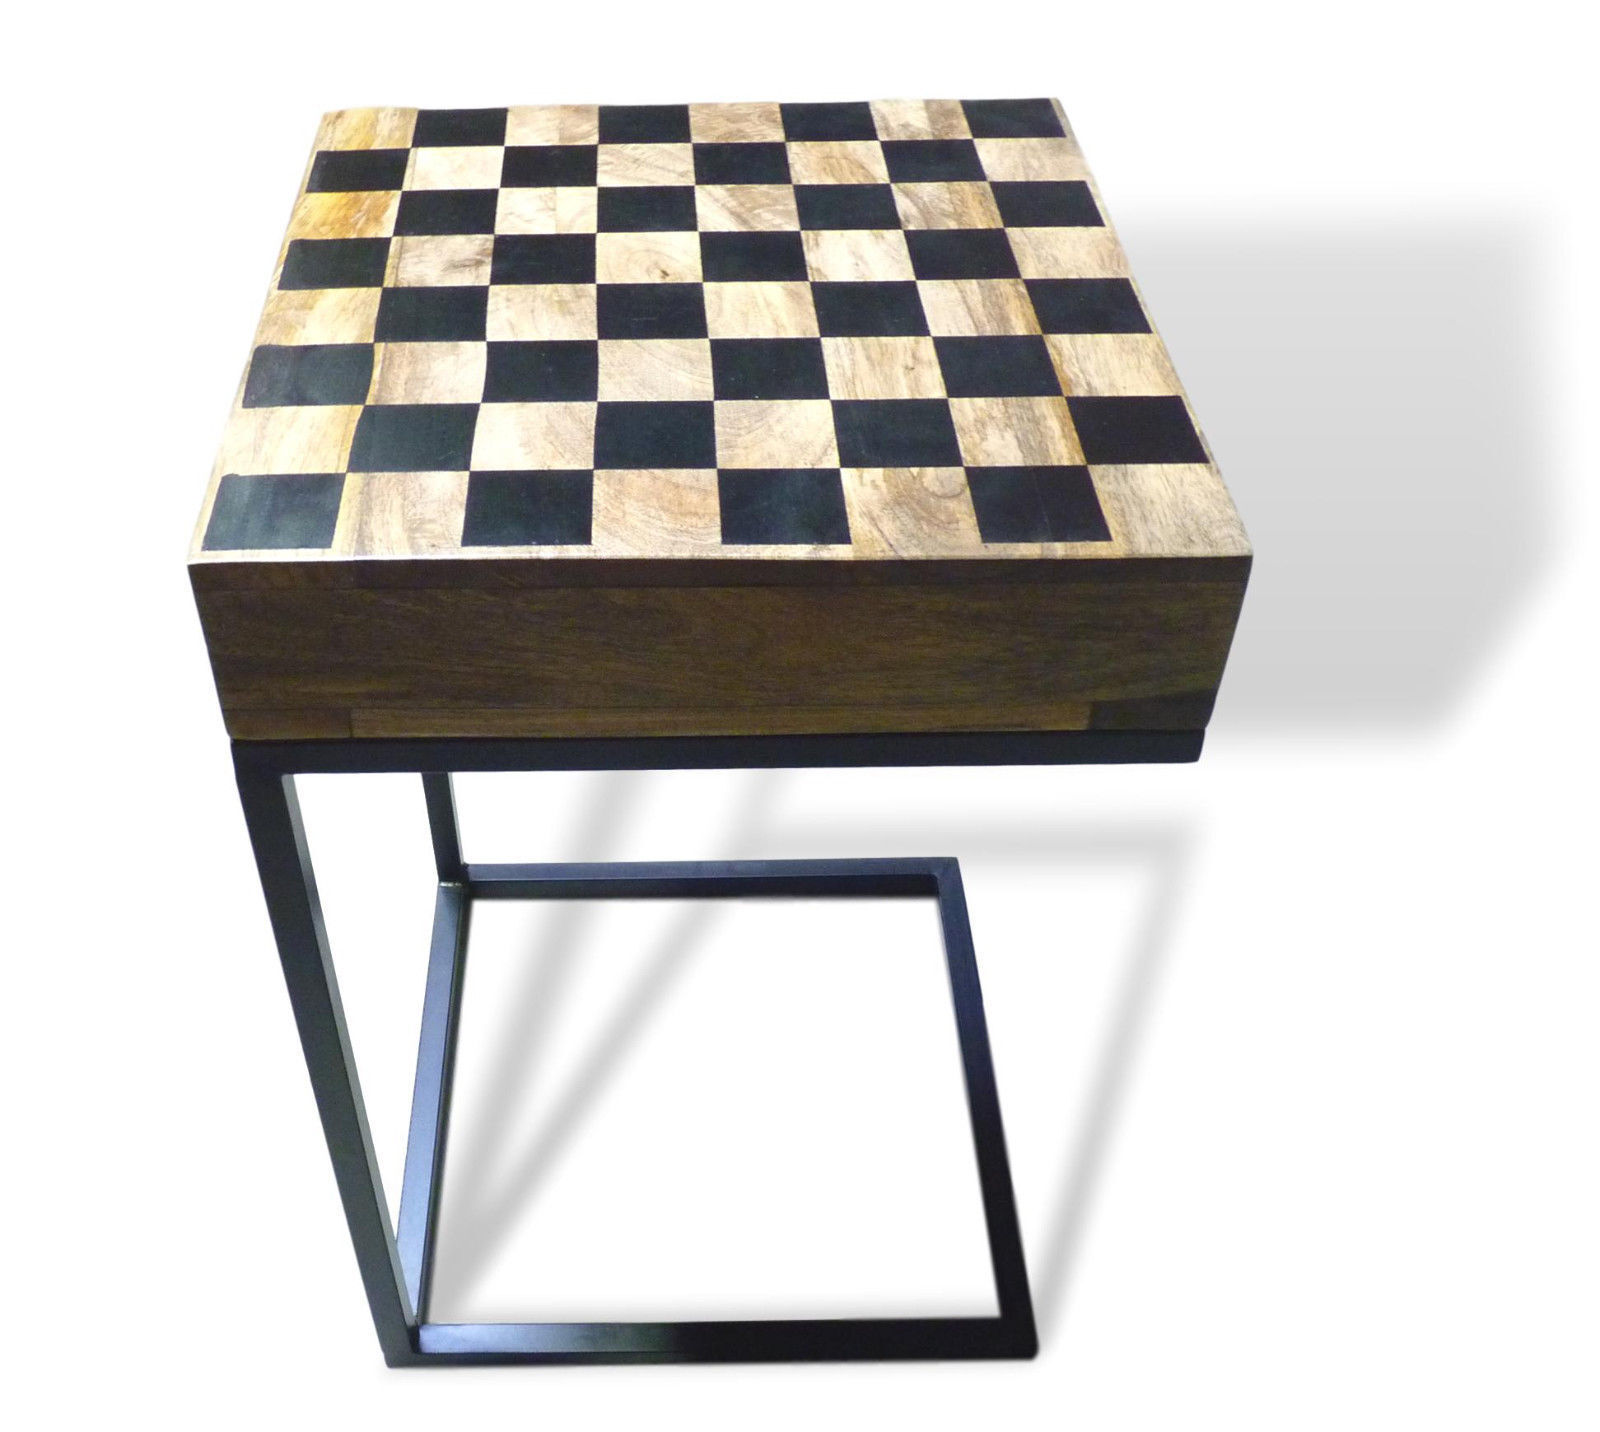 Photo Chess table Game table Solid Wood with Drawer C Table Iron legs Vintage Retro